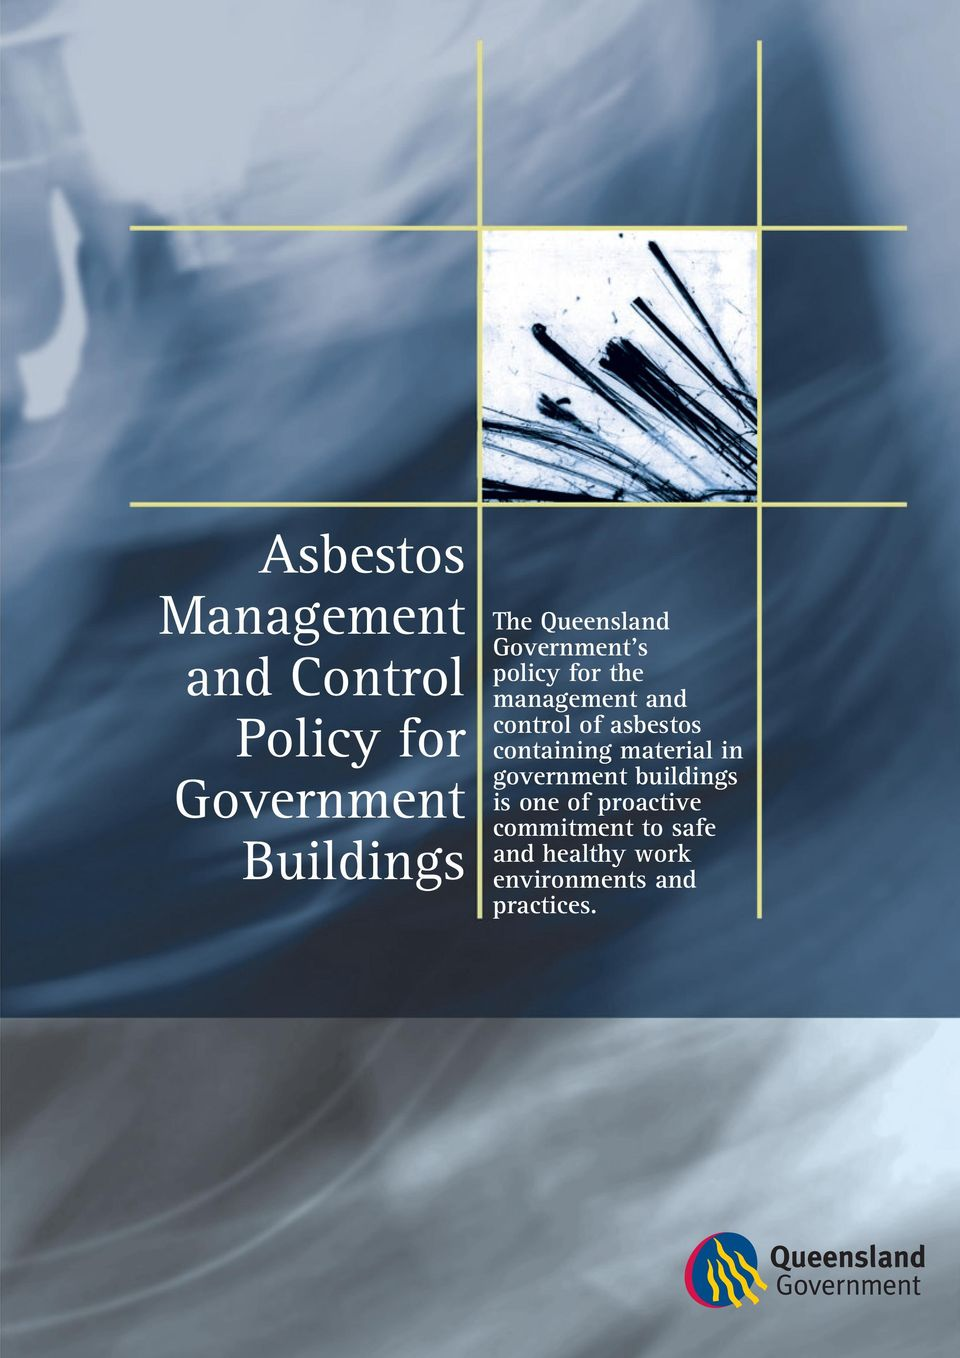 asbestos containing material in government buildings is one of